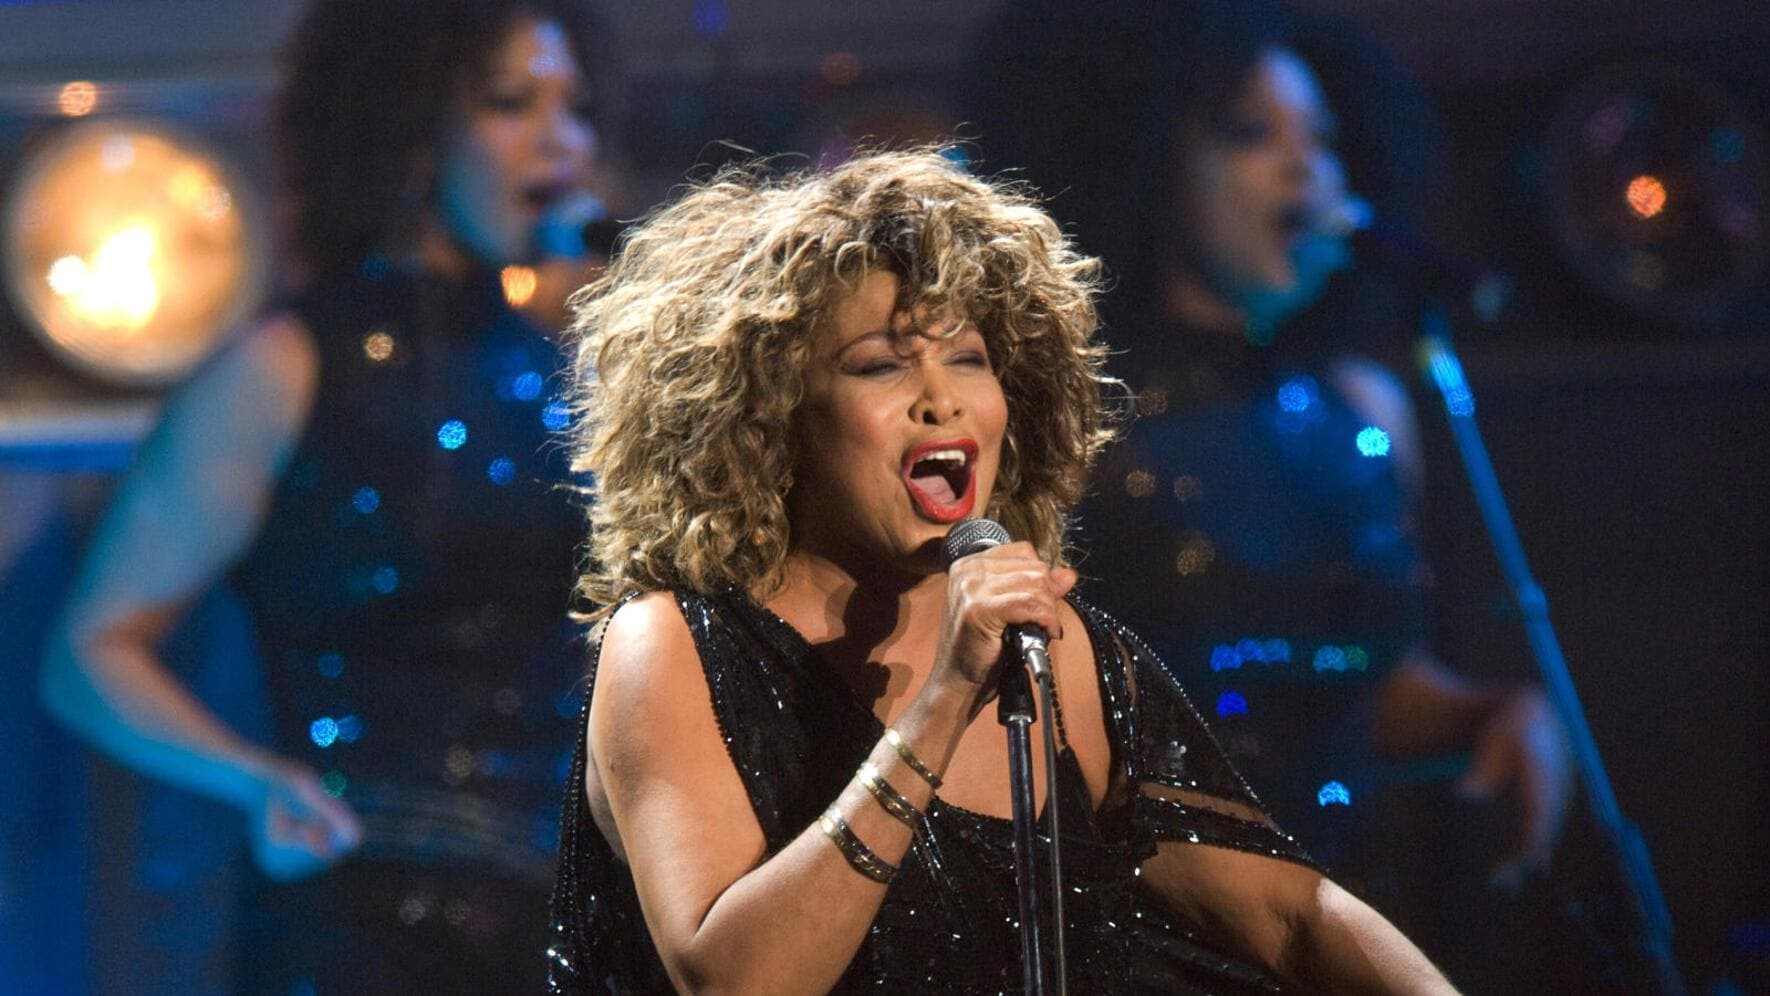 ARNHEM, NETHERLANDS - MARCH 21: Tina Turner performs on stage at the Gelredome on March 21st, 2009 in Arnhem, Netherlands. (Photo by Rob Verhorst/Redferns)